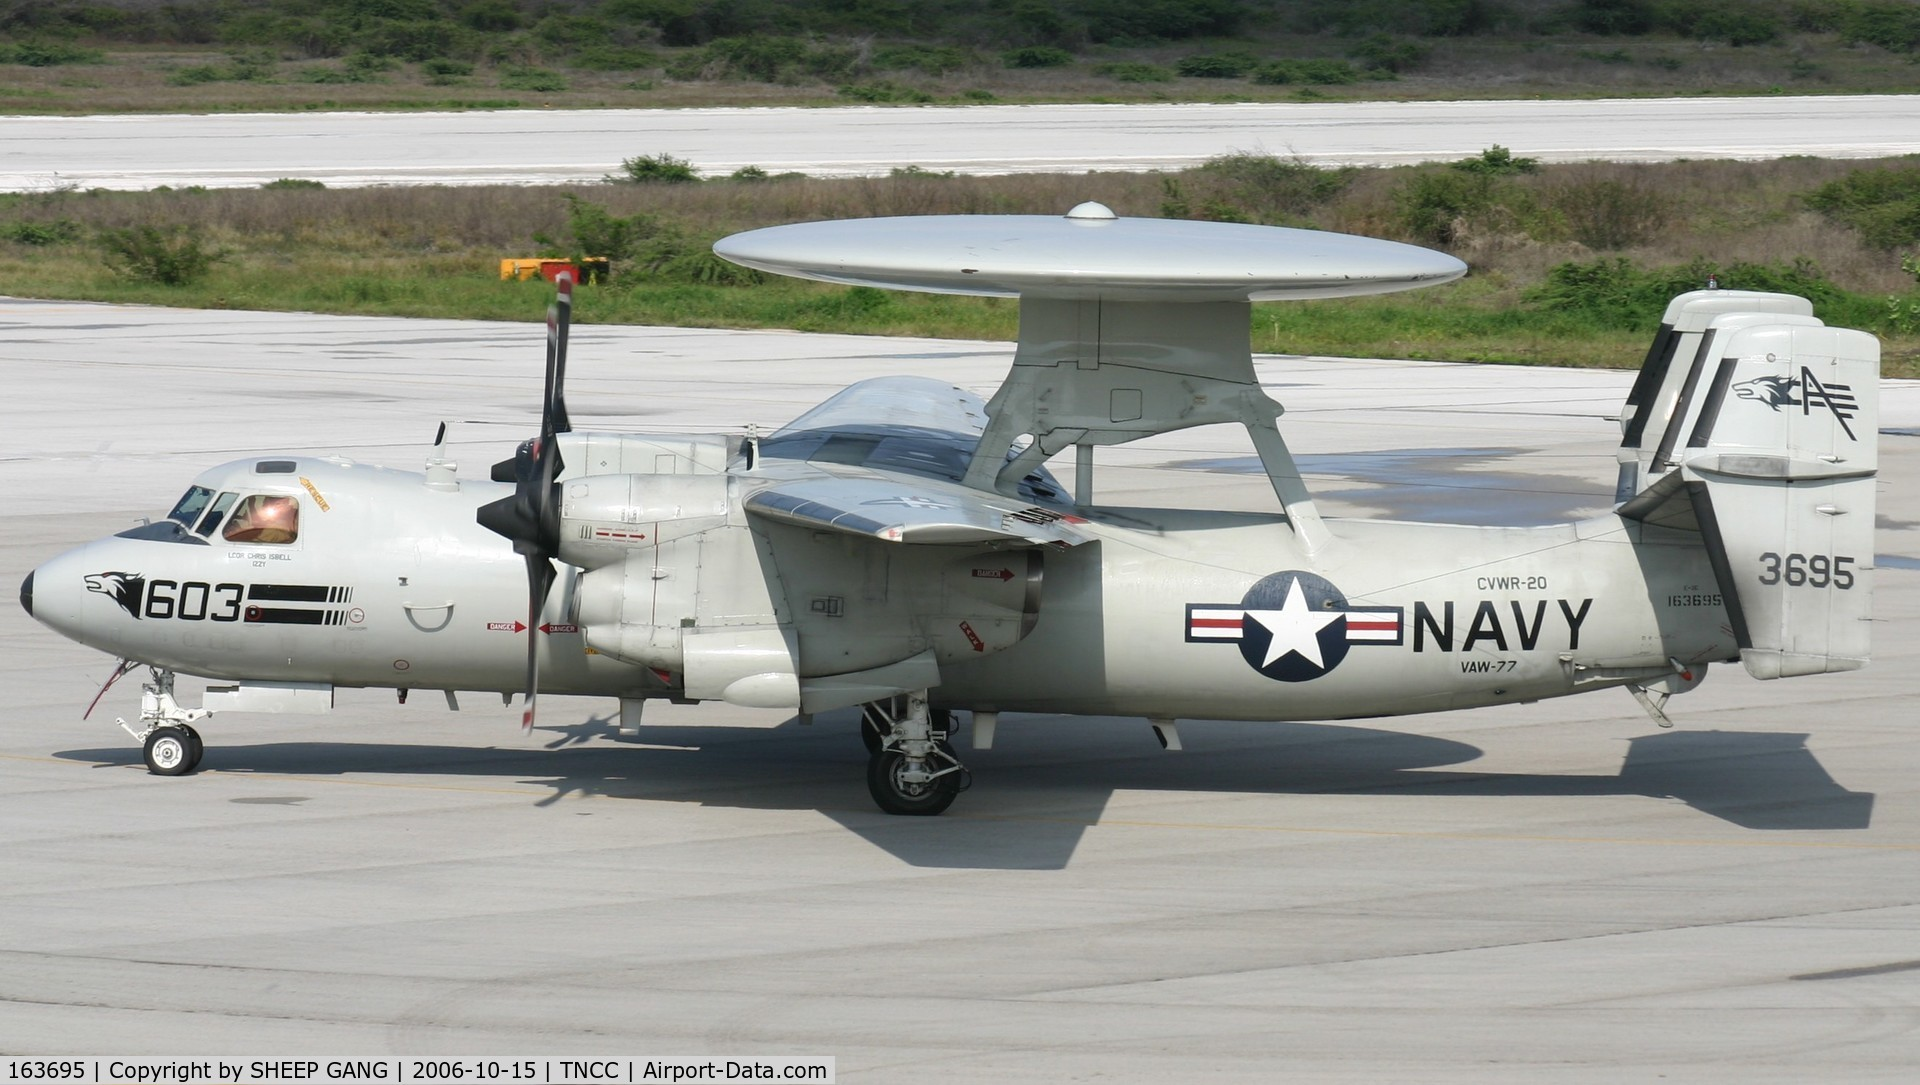 163695, Grumman E-2C Hawkeye Group 1 C/N A135, getting ready for departure